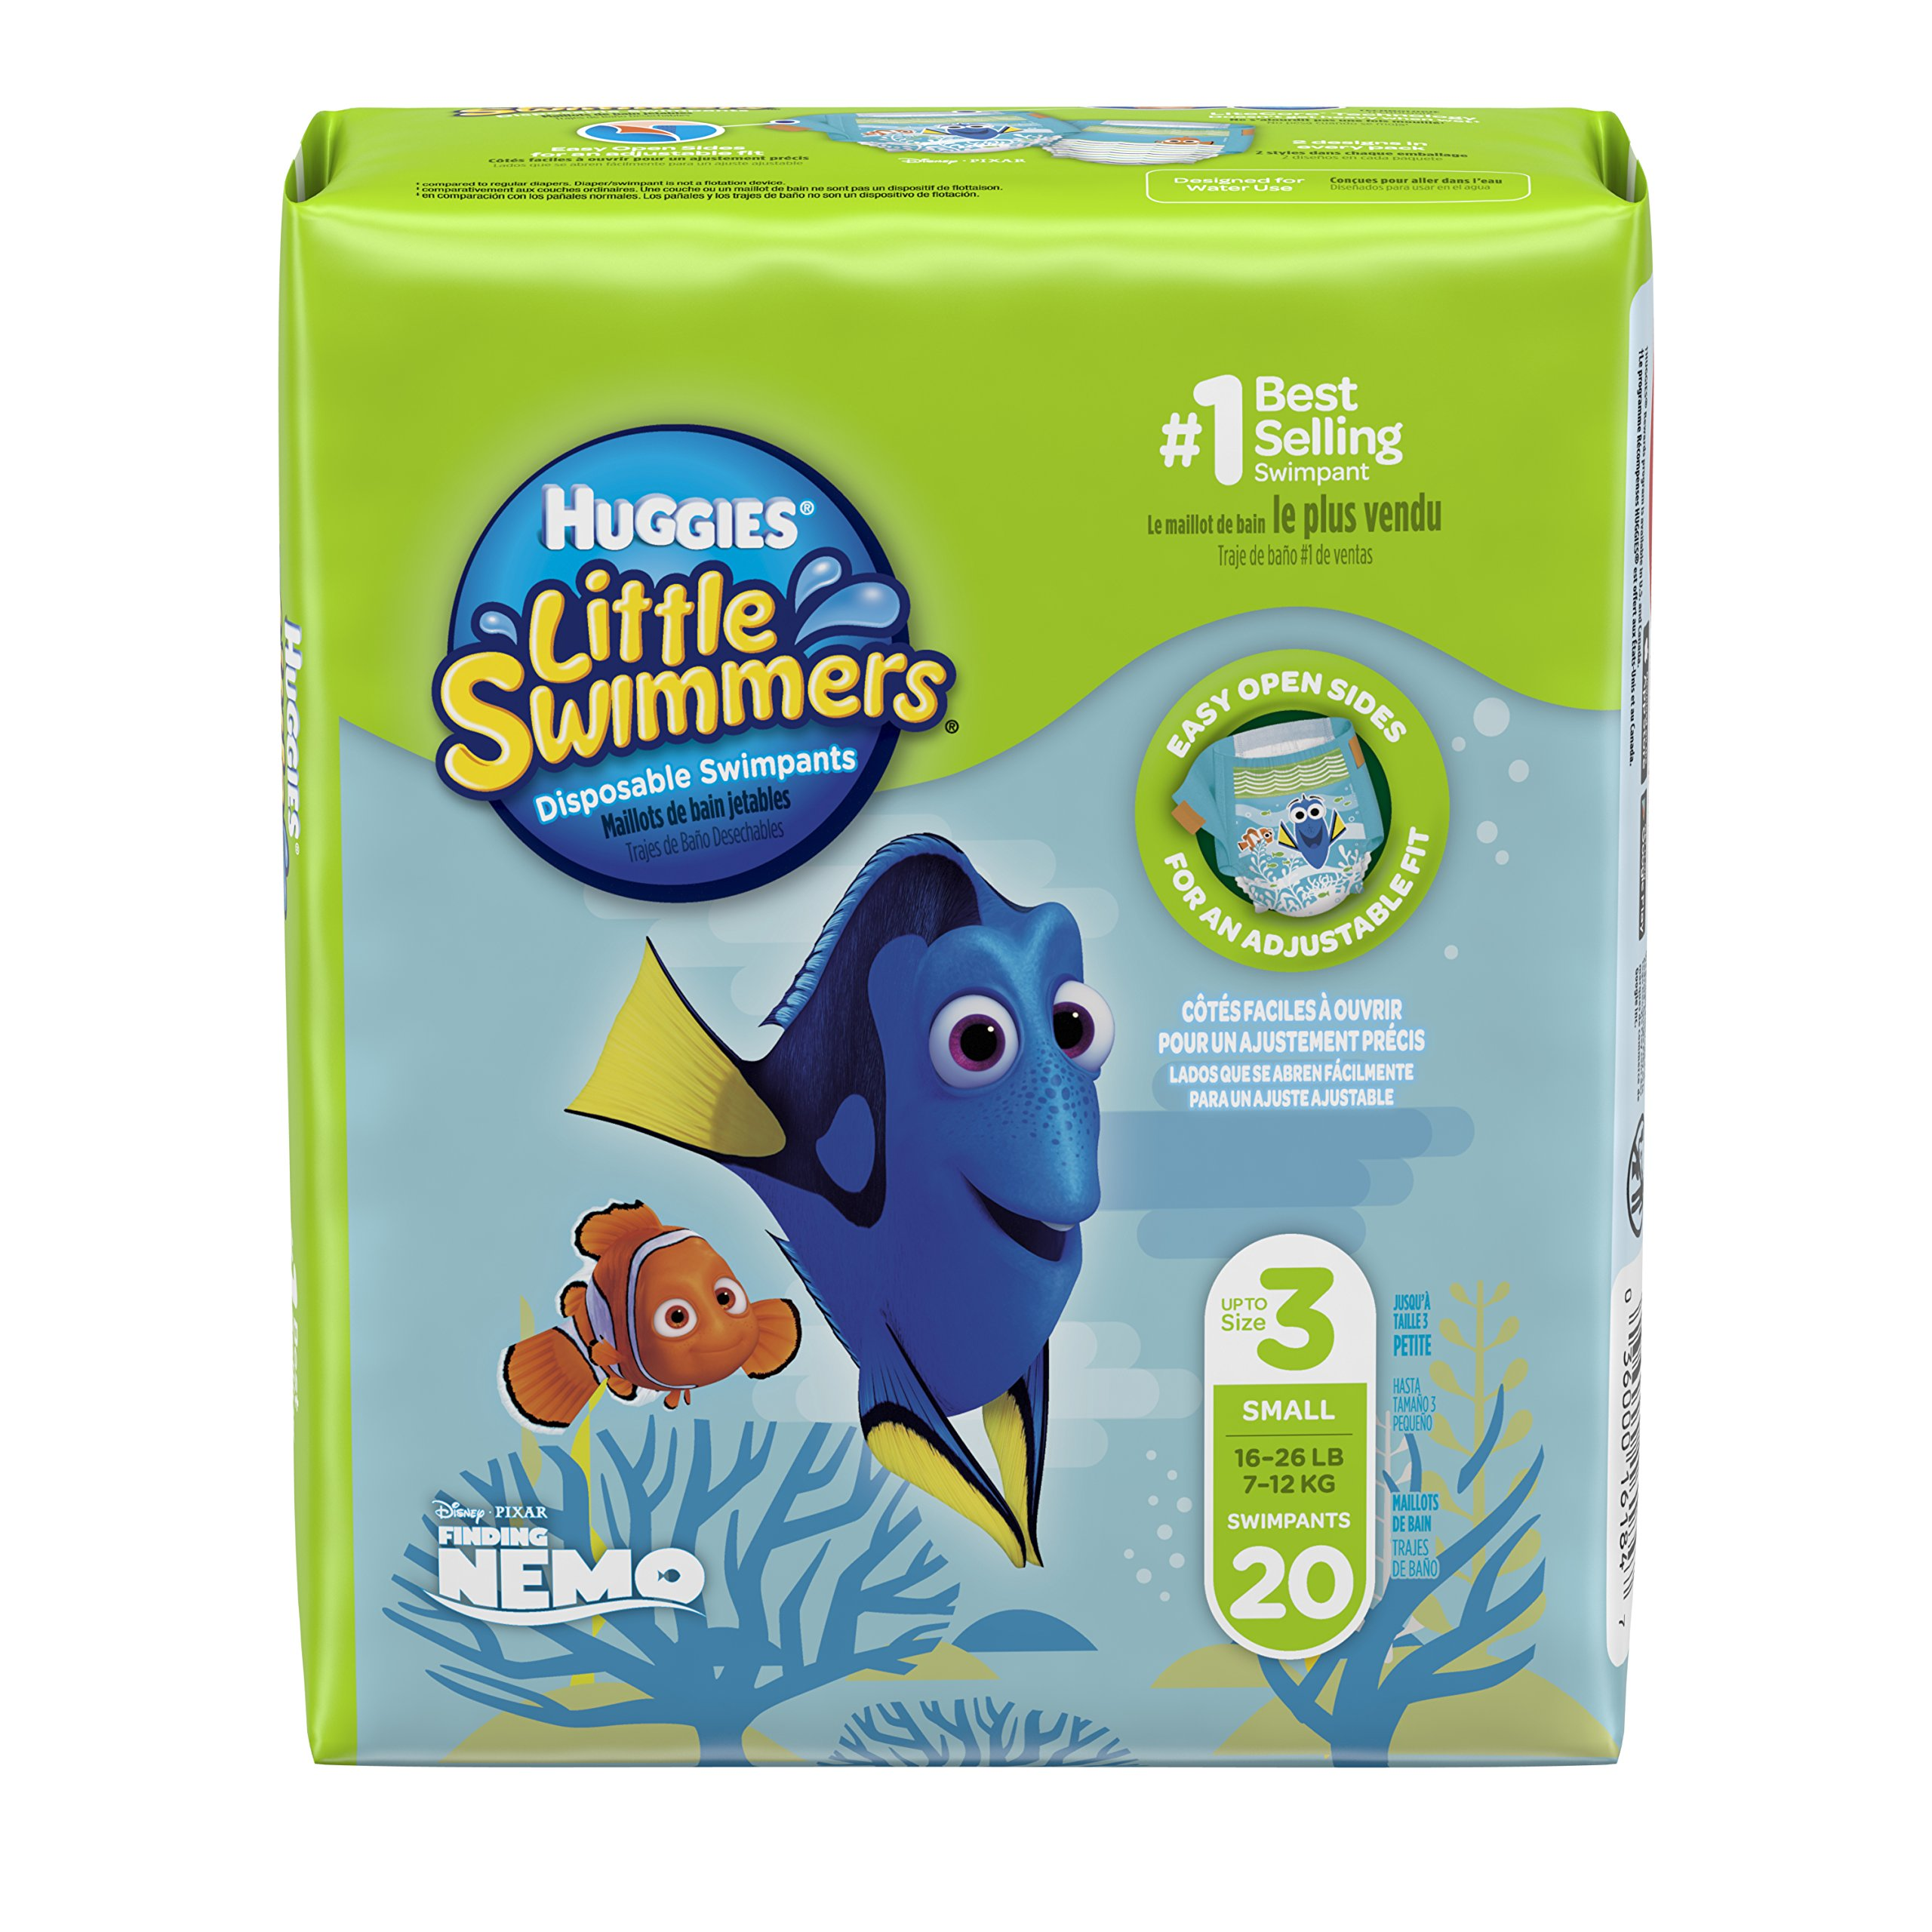 Amazon.com: Huggies Little Swimmers Disposable Swim Diapers, Swimpants, Size 3 Small (16-26 lb.), 20 Ct. (Packaging May Vary): Health & Personal Care